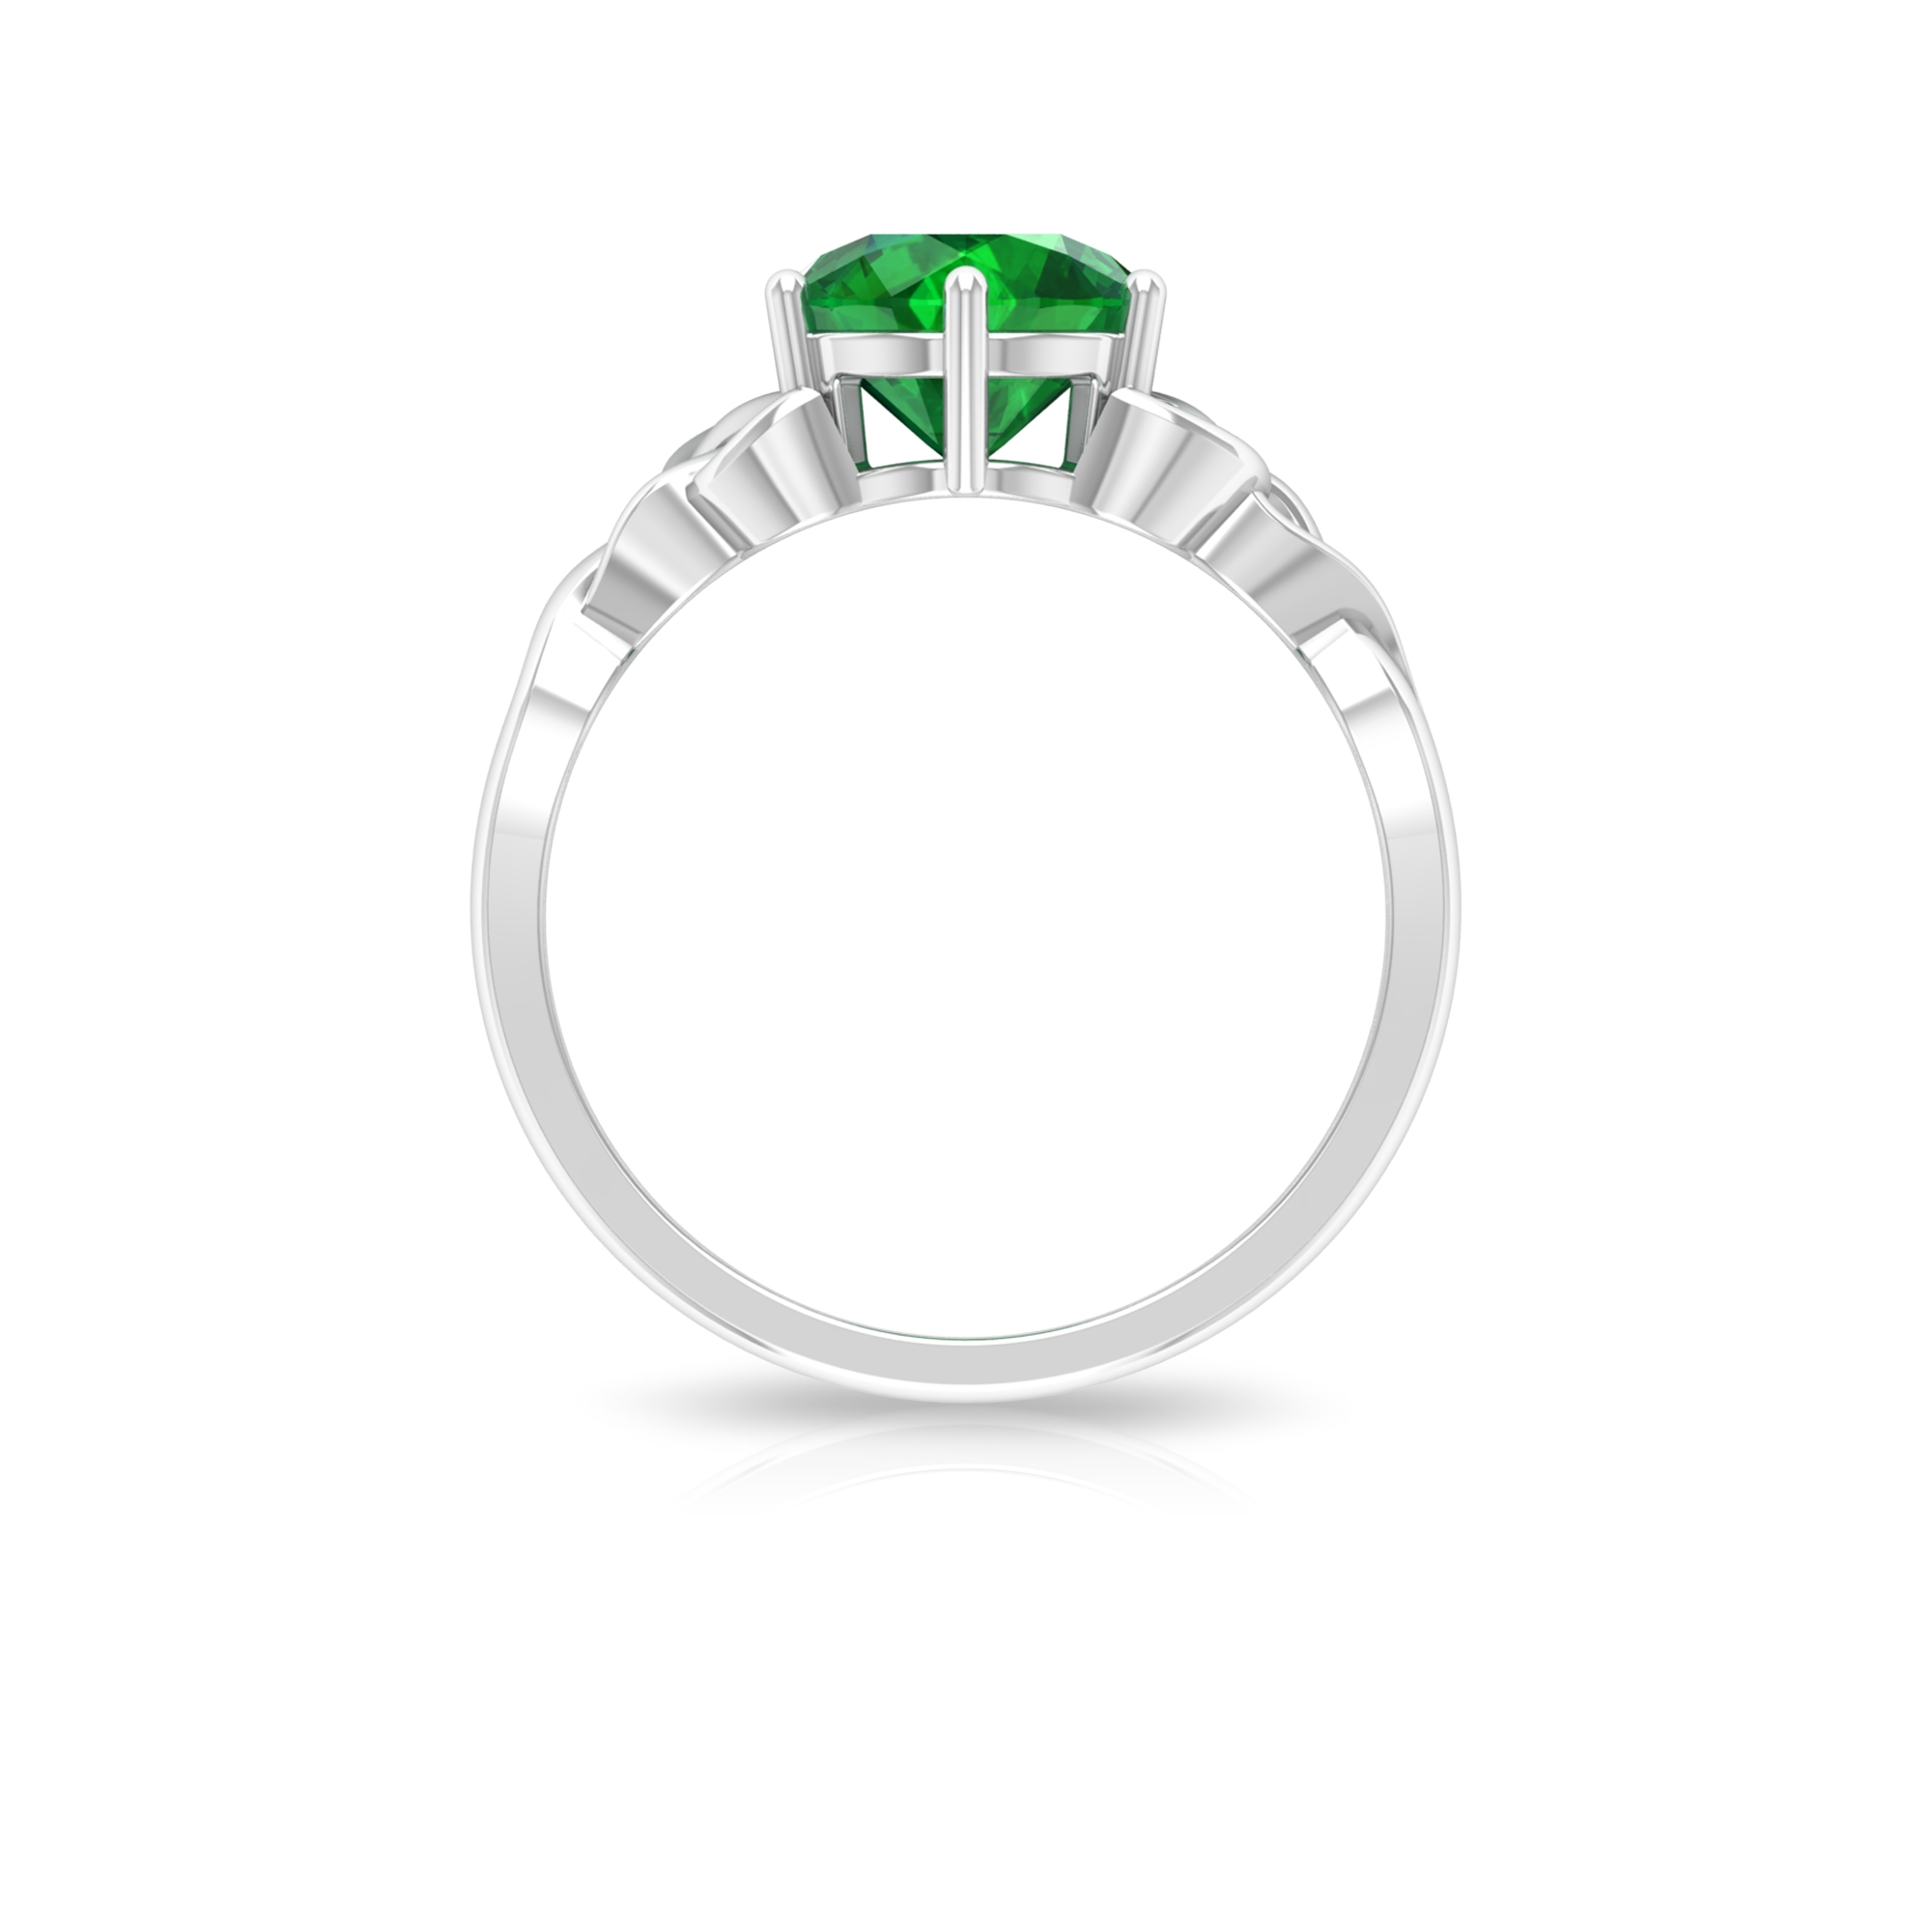 May Birthstone 8 MM Emerald Solitaire Ring in 6 Prong Setting with Celtic Pattern